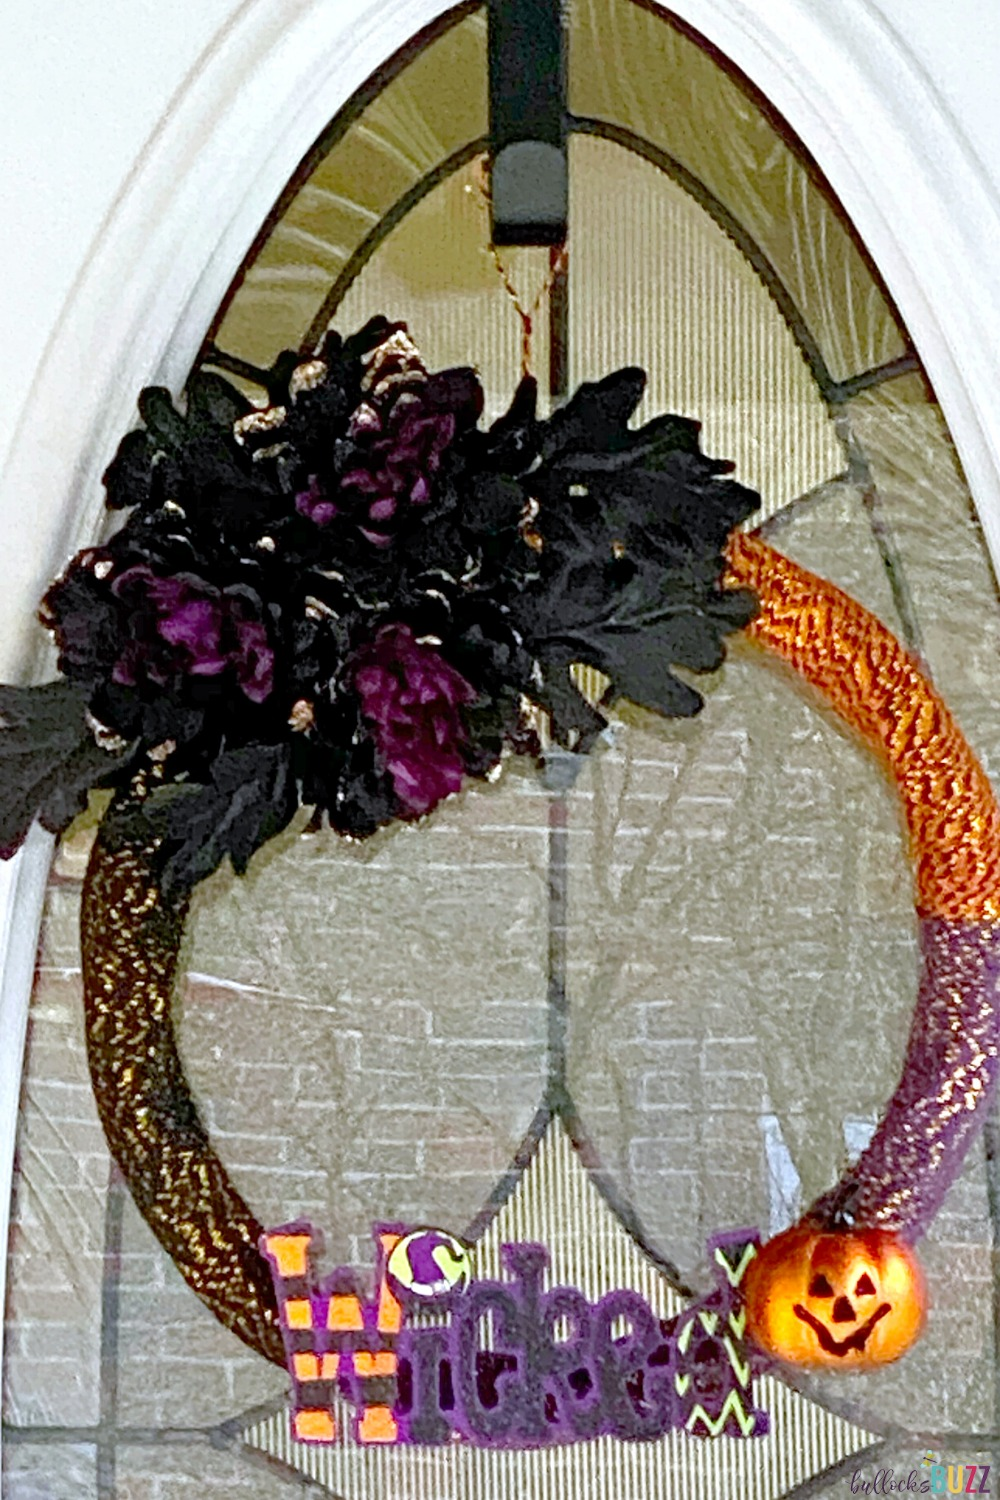 This spooktacular DIY Halloween Wreath idea is almost completely made with supplies from the Dollar Tree and takes less than 30 minutes to make!